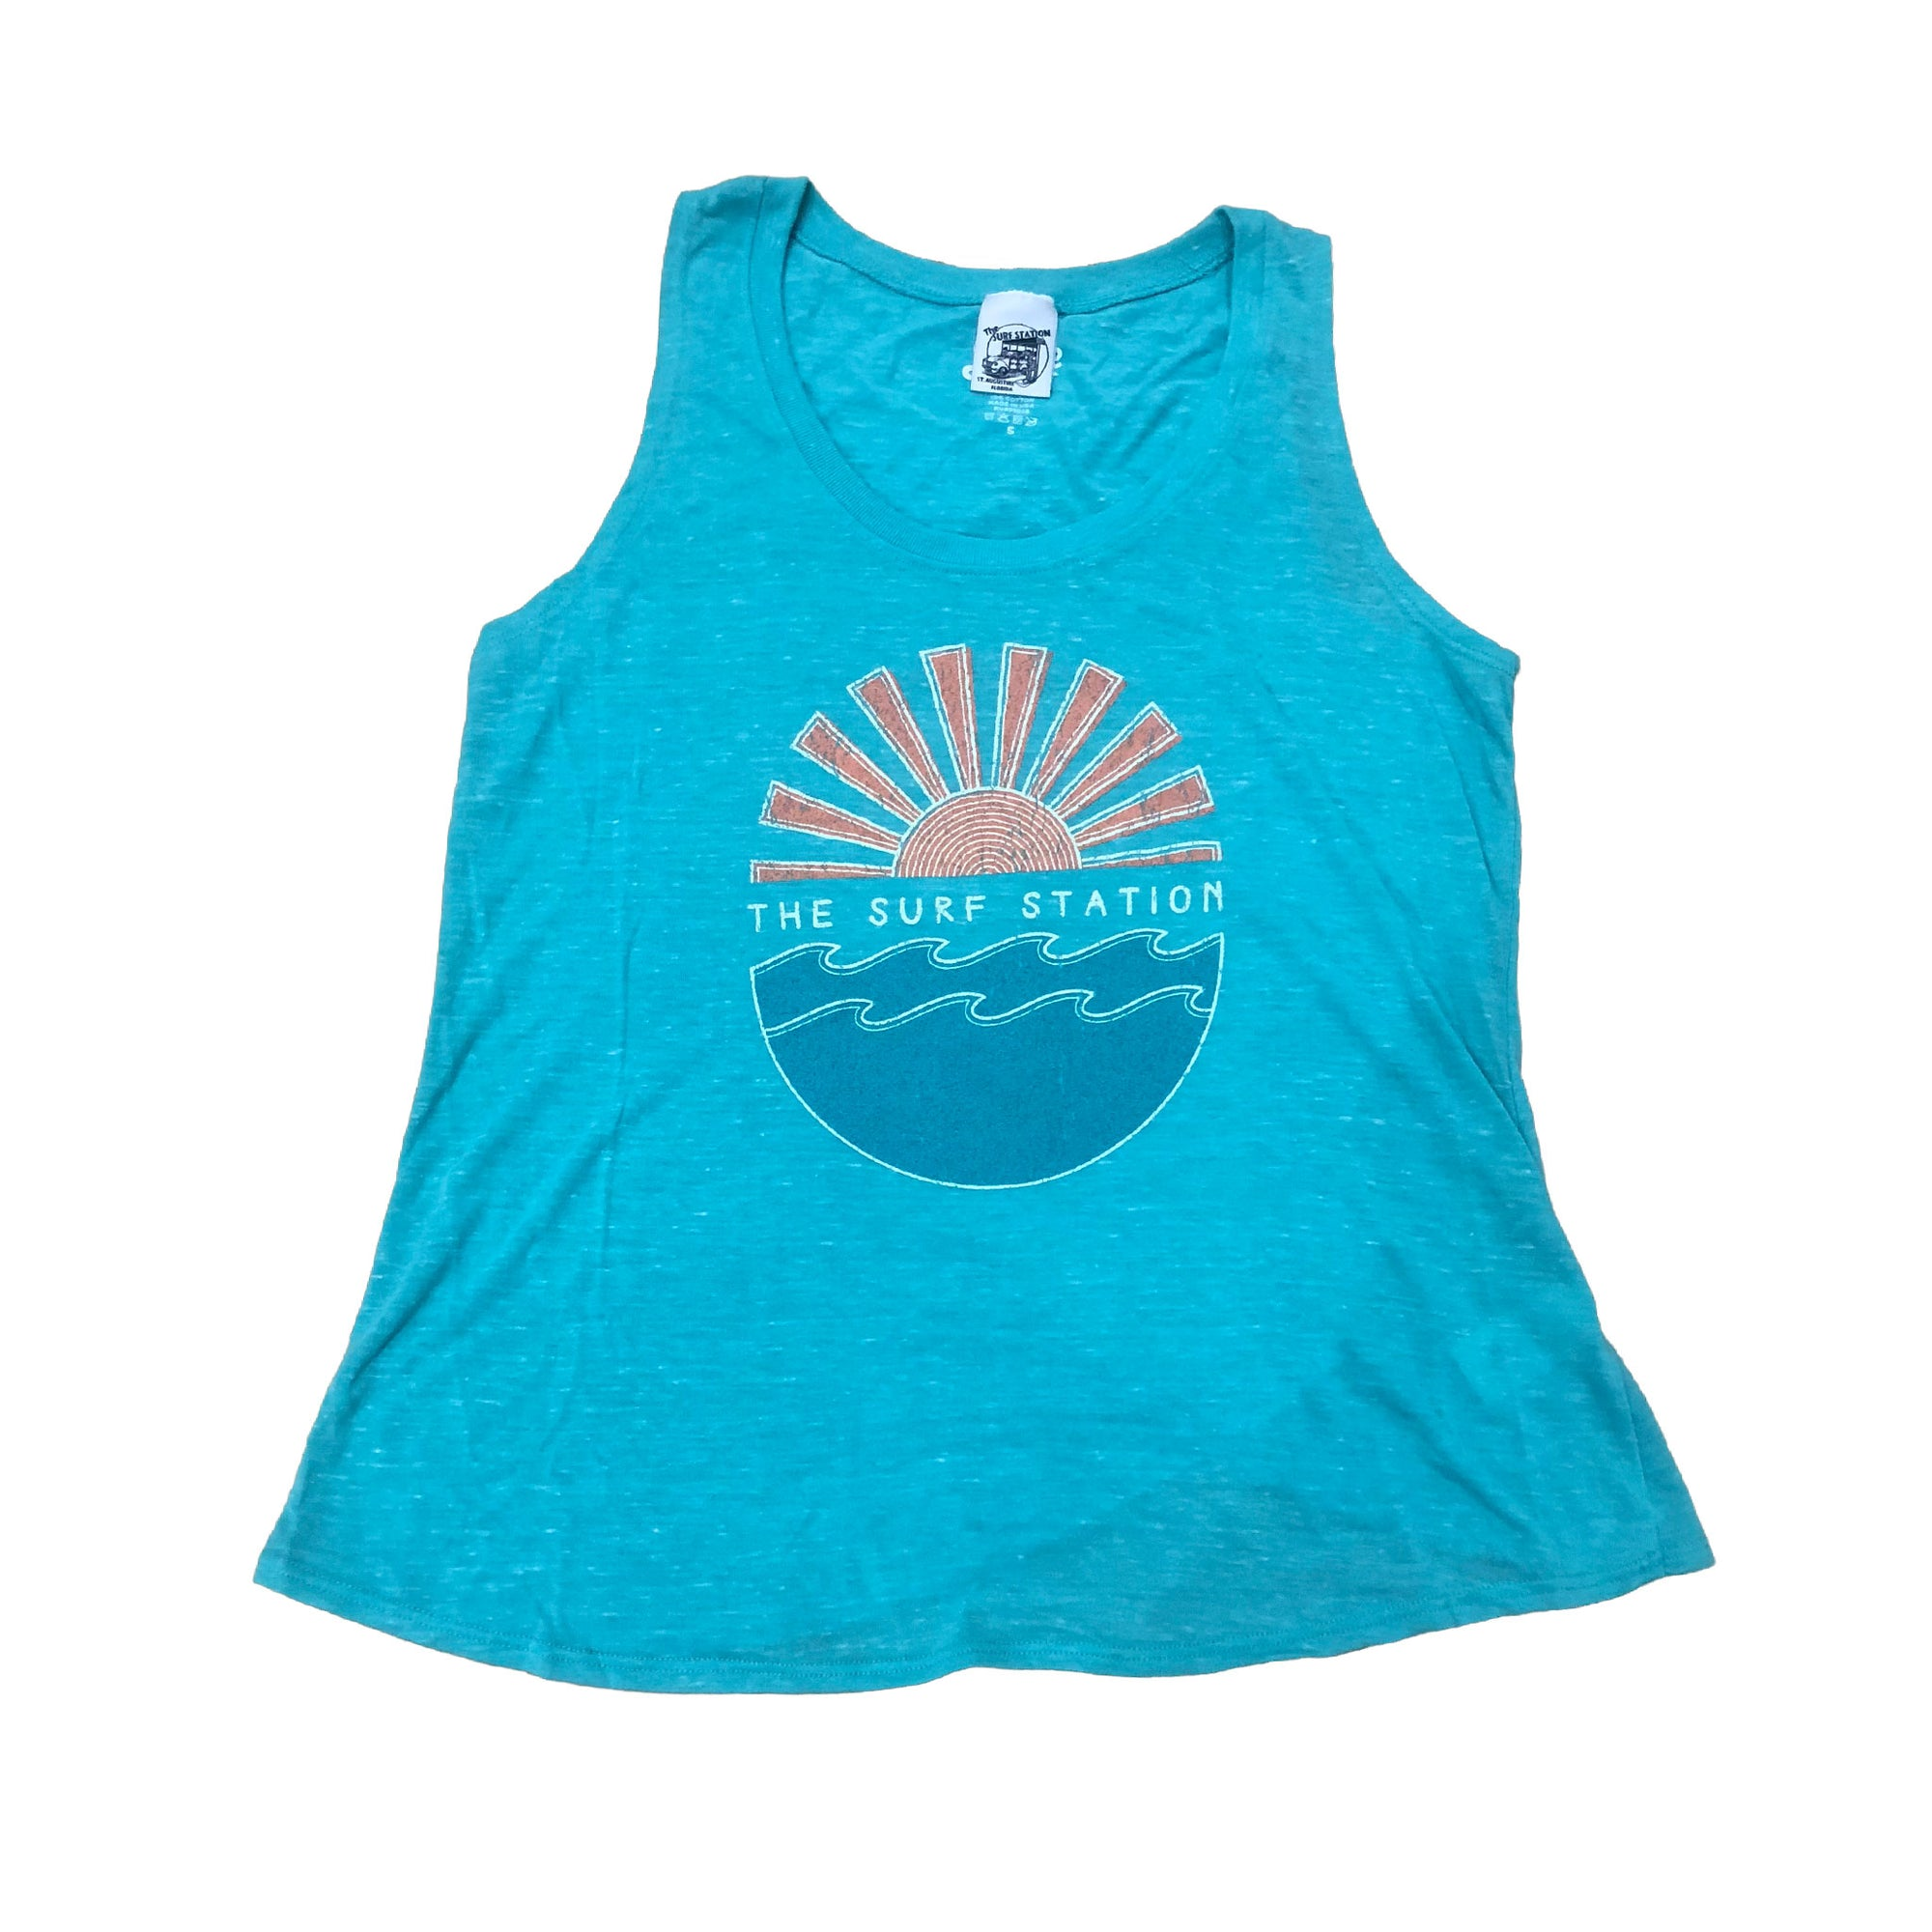 Surf Station Ground Swell Sun Rise Women's Muscle Tank Top Aqua